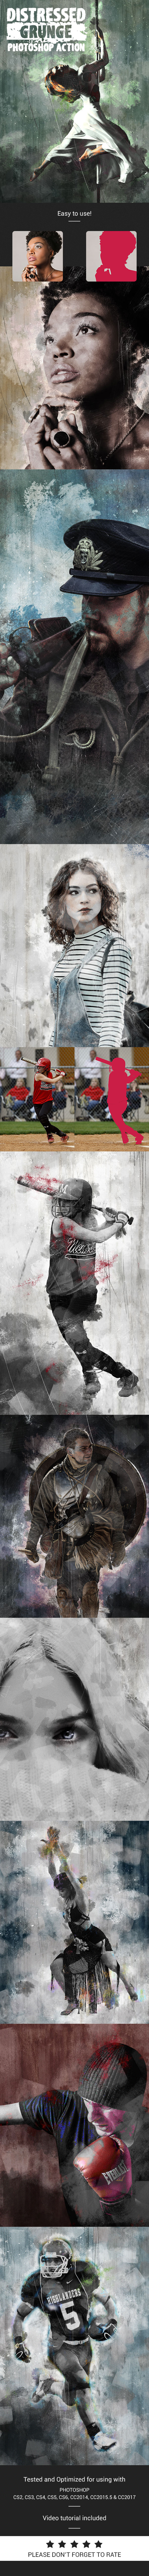 Distressed Grunge Photoshop Action - Photo Effects Actions